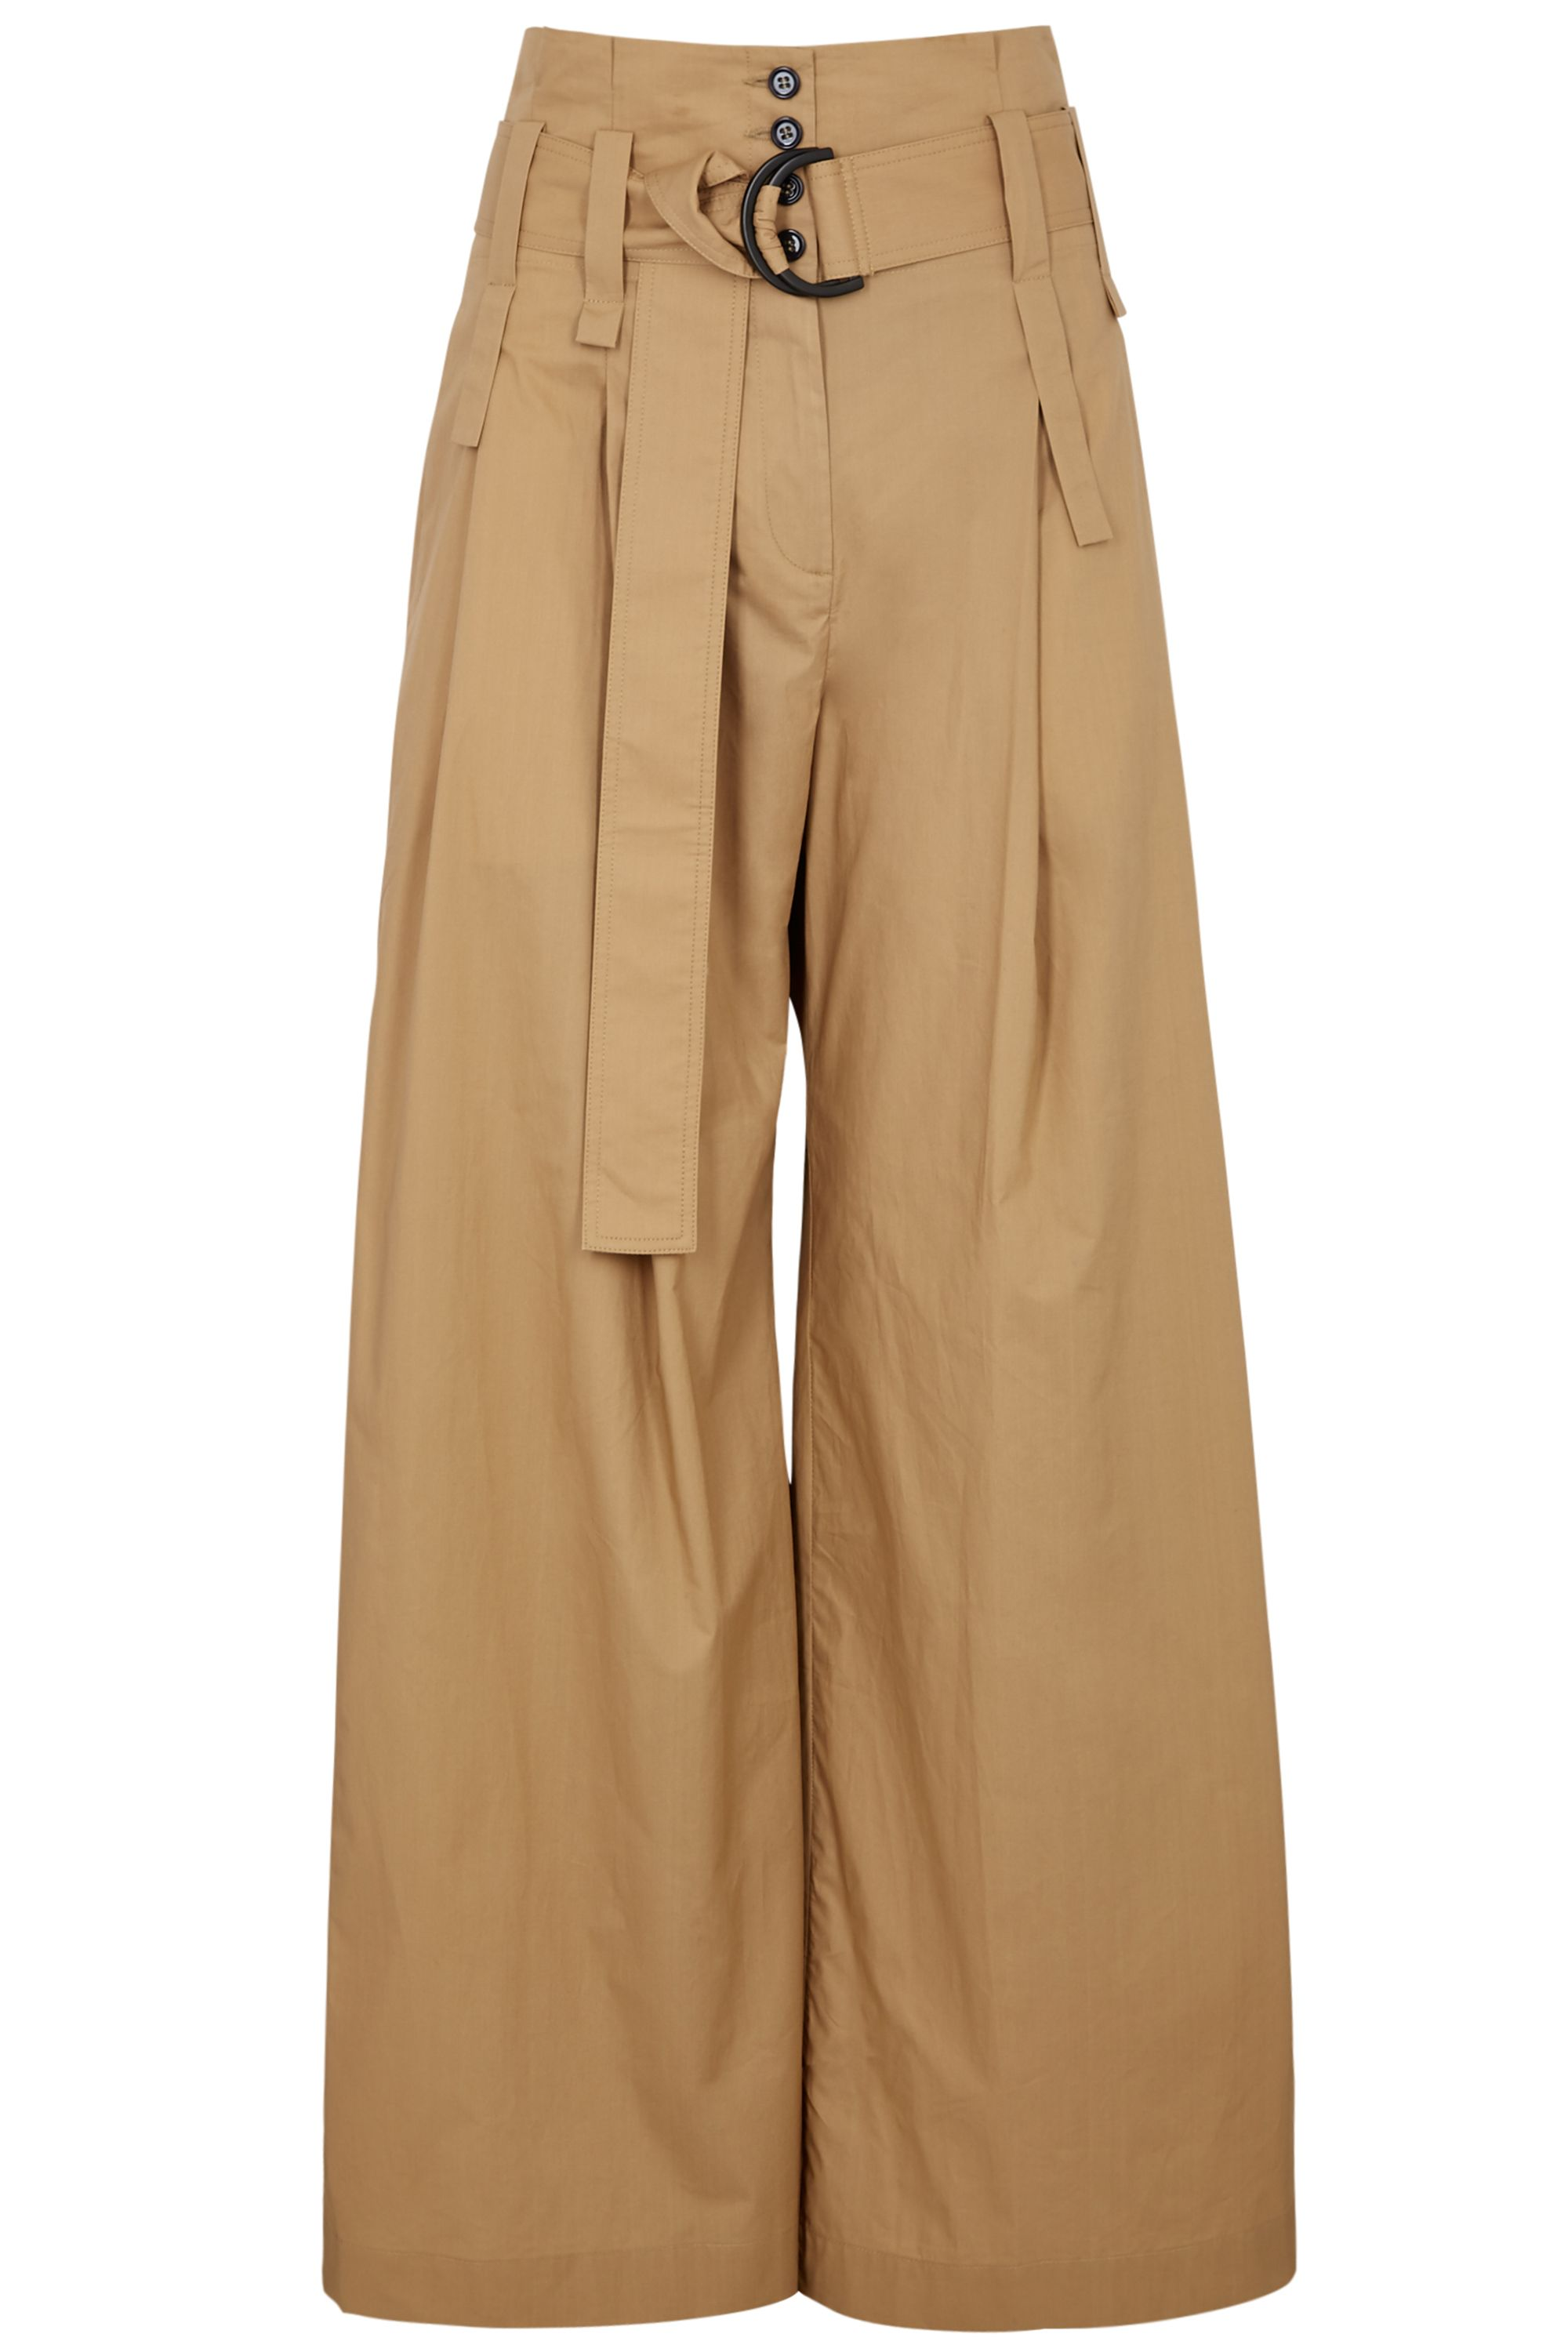 461365f65b8c Fashion Find of the Day 2019